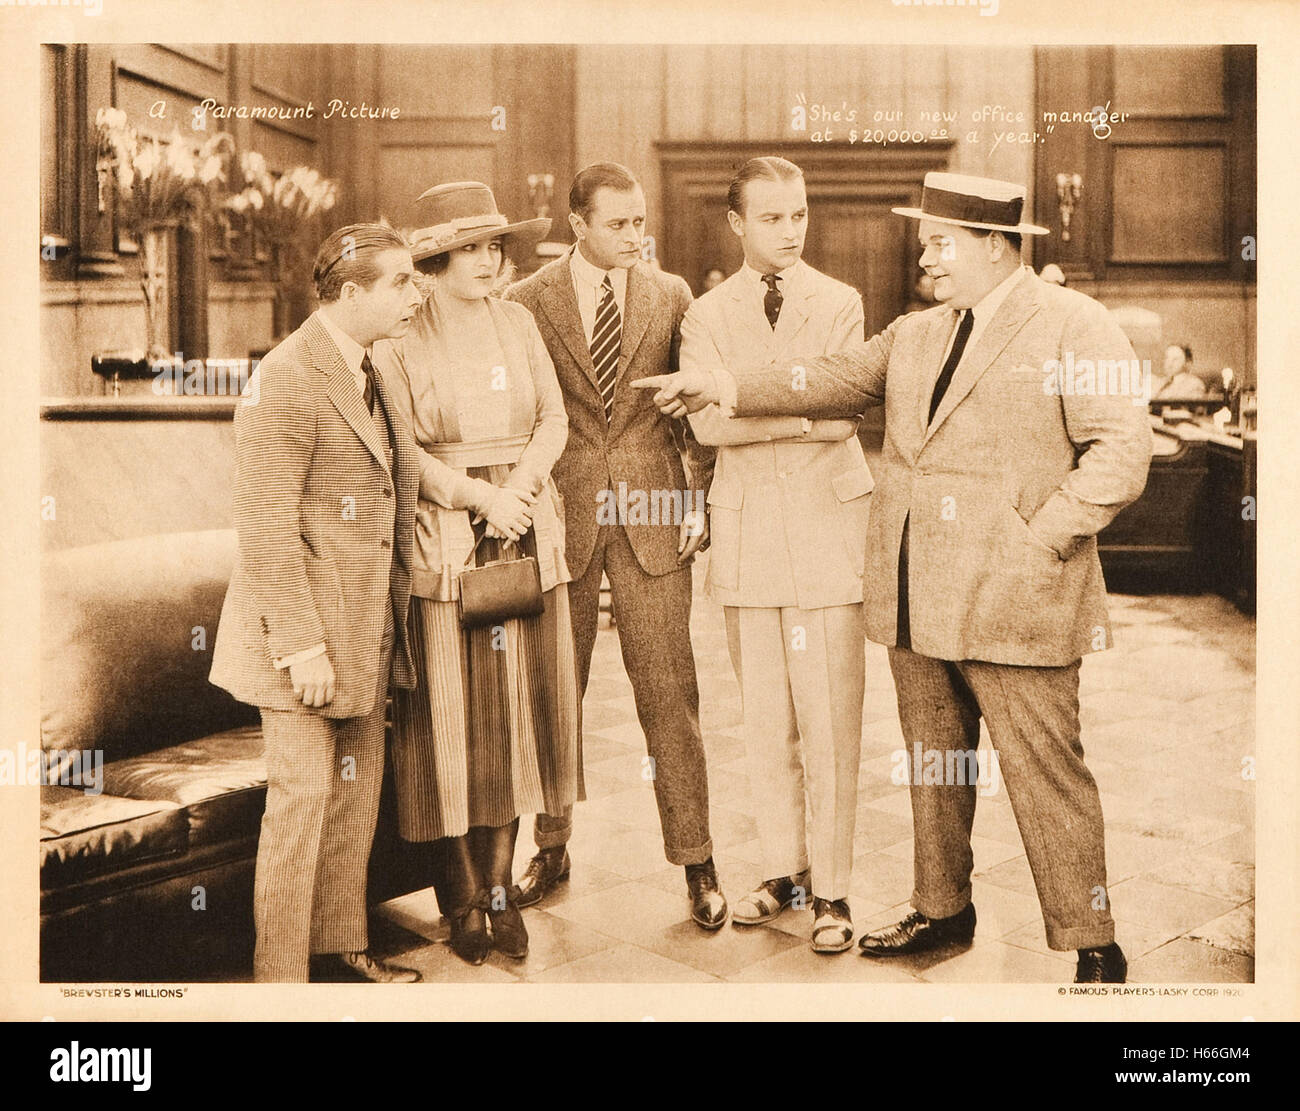 Brewster's Millions (1921) - Movie Poster - - Stock Image